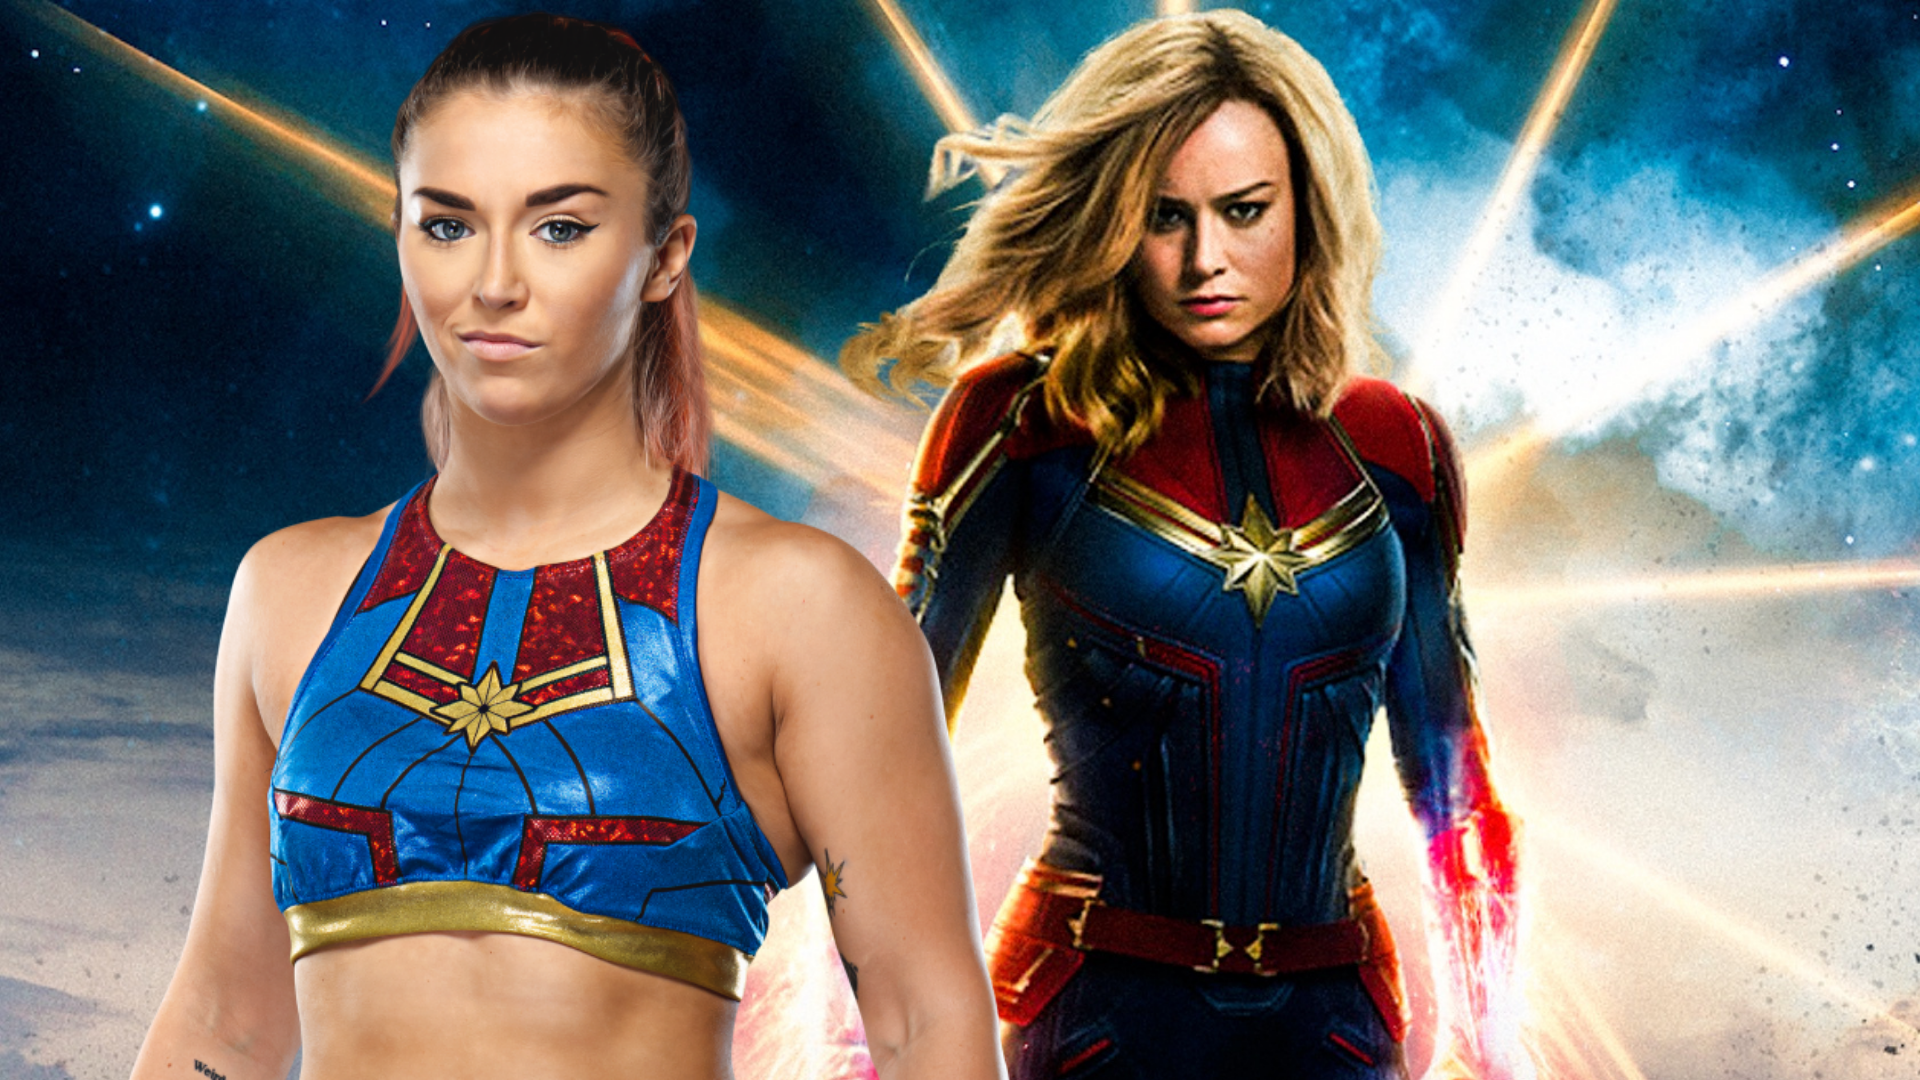 Superheld*innen empowern! Captain Marvel verhilft zum Coming Out